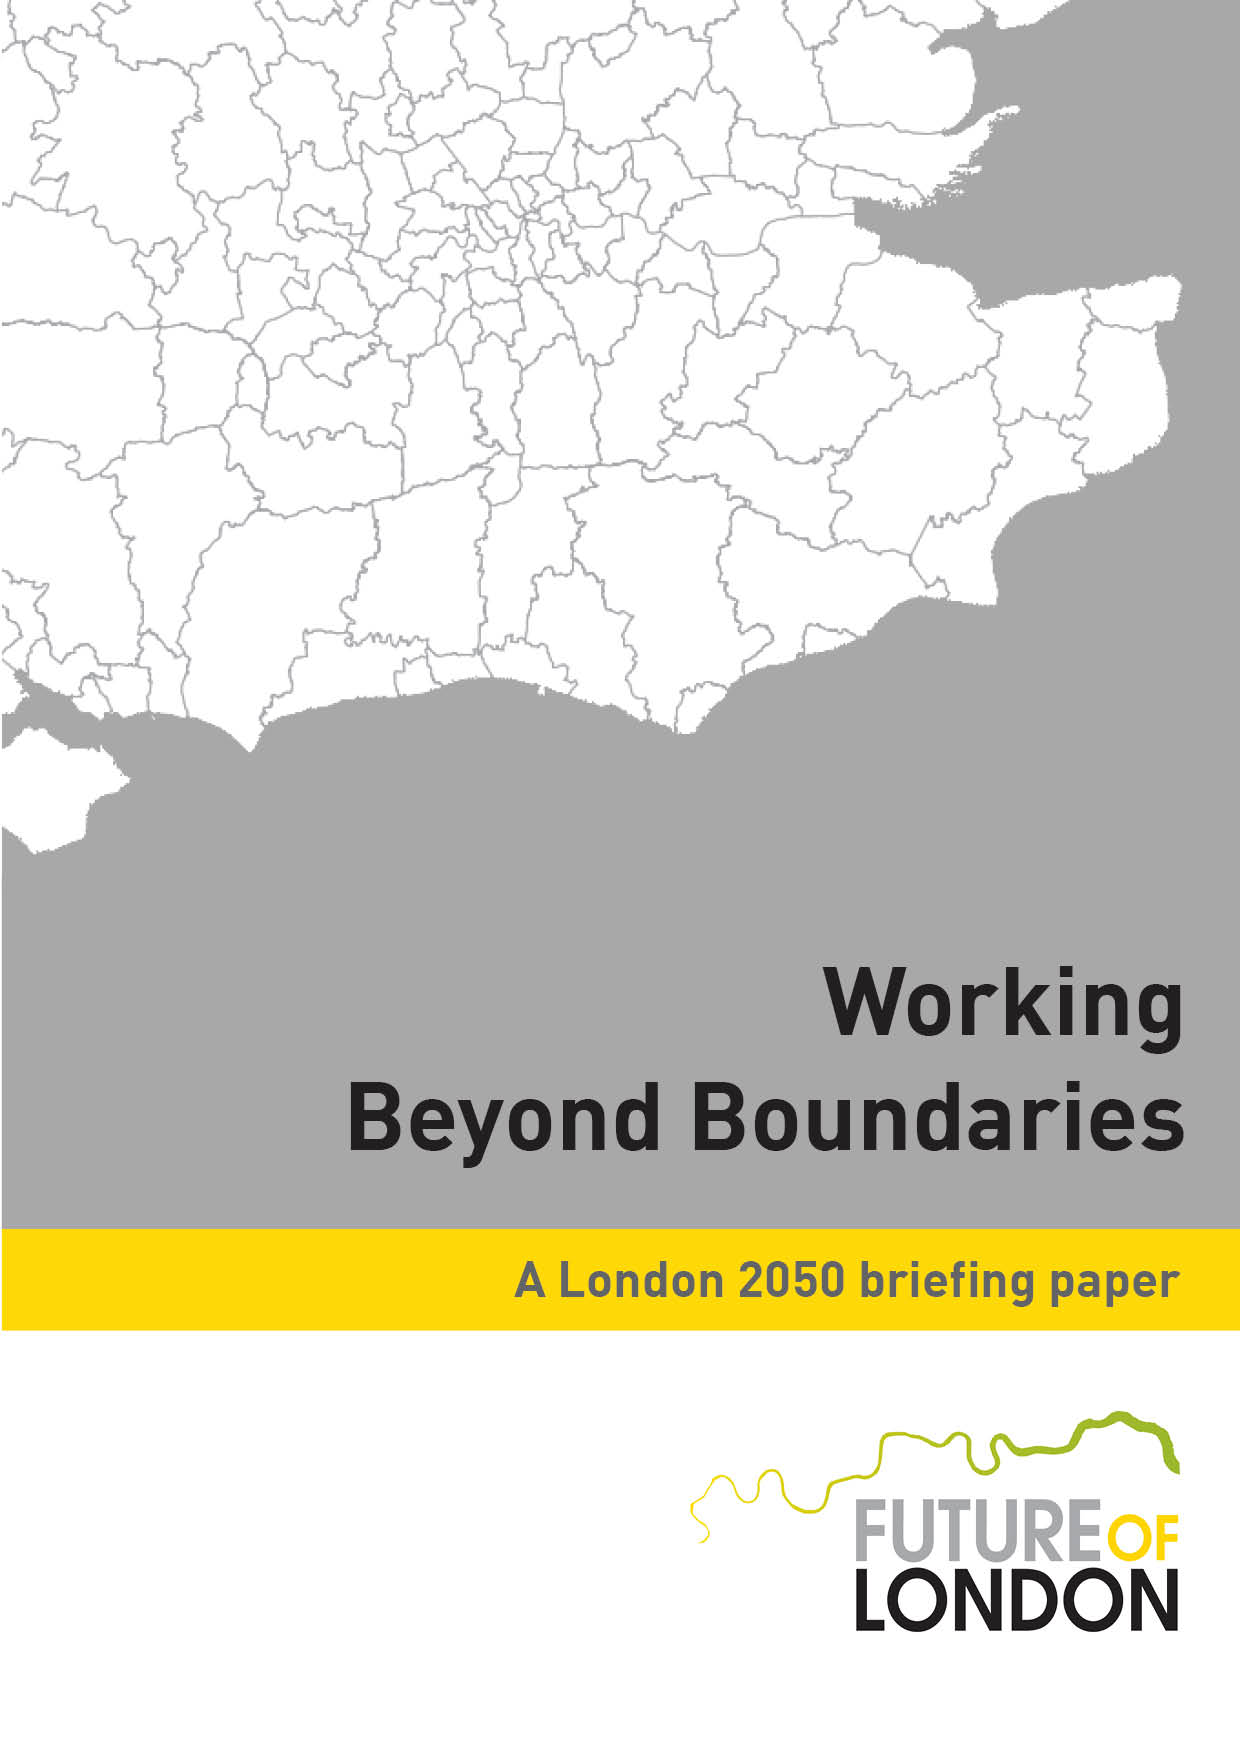 Working Beyond Boundaries briefing paper - cover